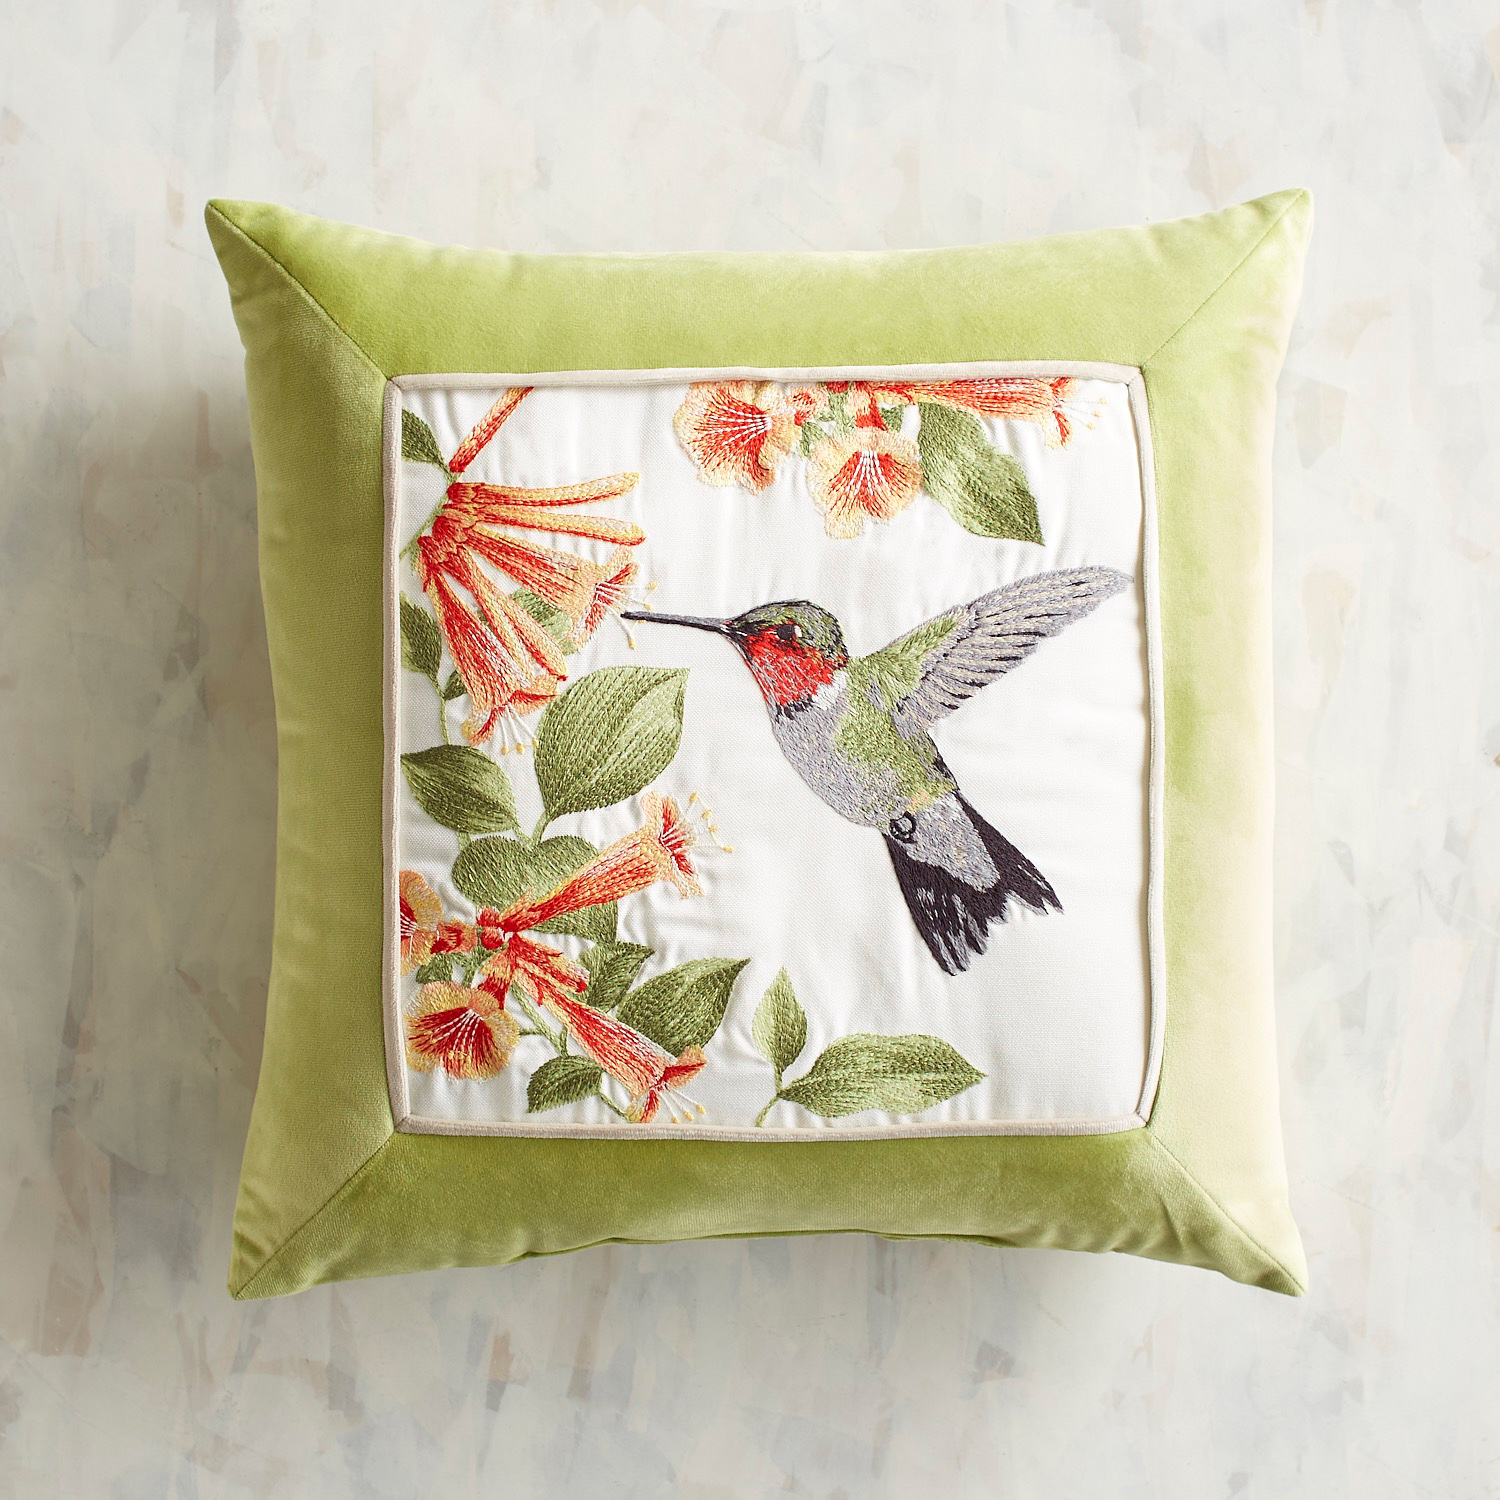 Embroidered Hummingbird Pillow